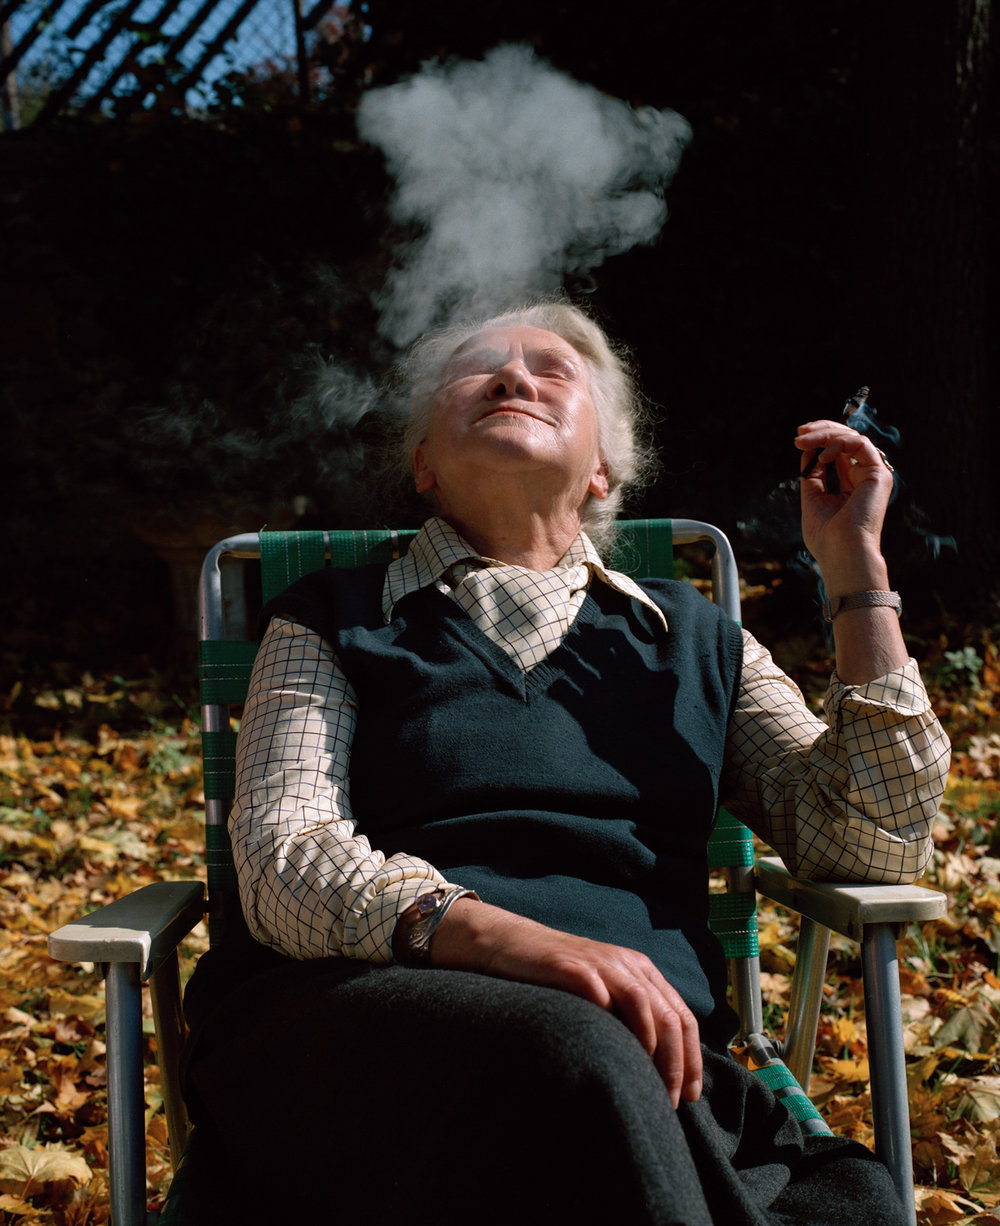 Zofia Baniecka, Poland,  from  Rescuers    Zofia smoked like this, lighting one cigarette from another, during the entire interview. She spoke Polish and was probably bored when our translator imparted her words to us. She was a committed and brave woman, hiding Jews in her flat as well as guns for the resistance, later being jailed several times as she always worked for a free Poland.